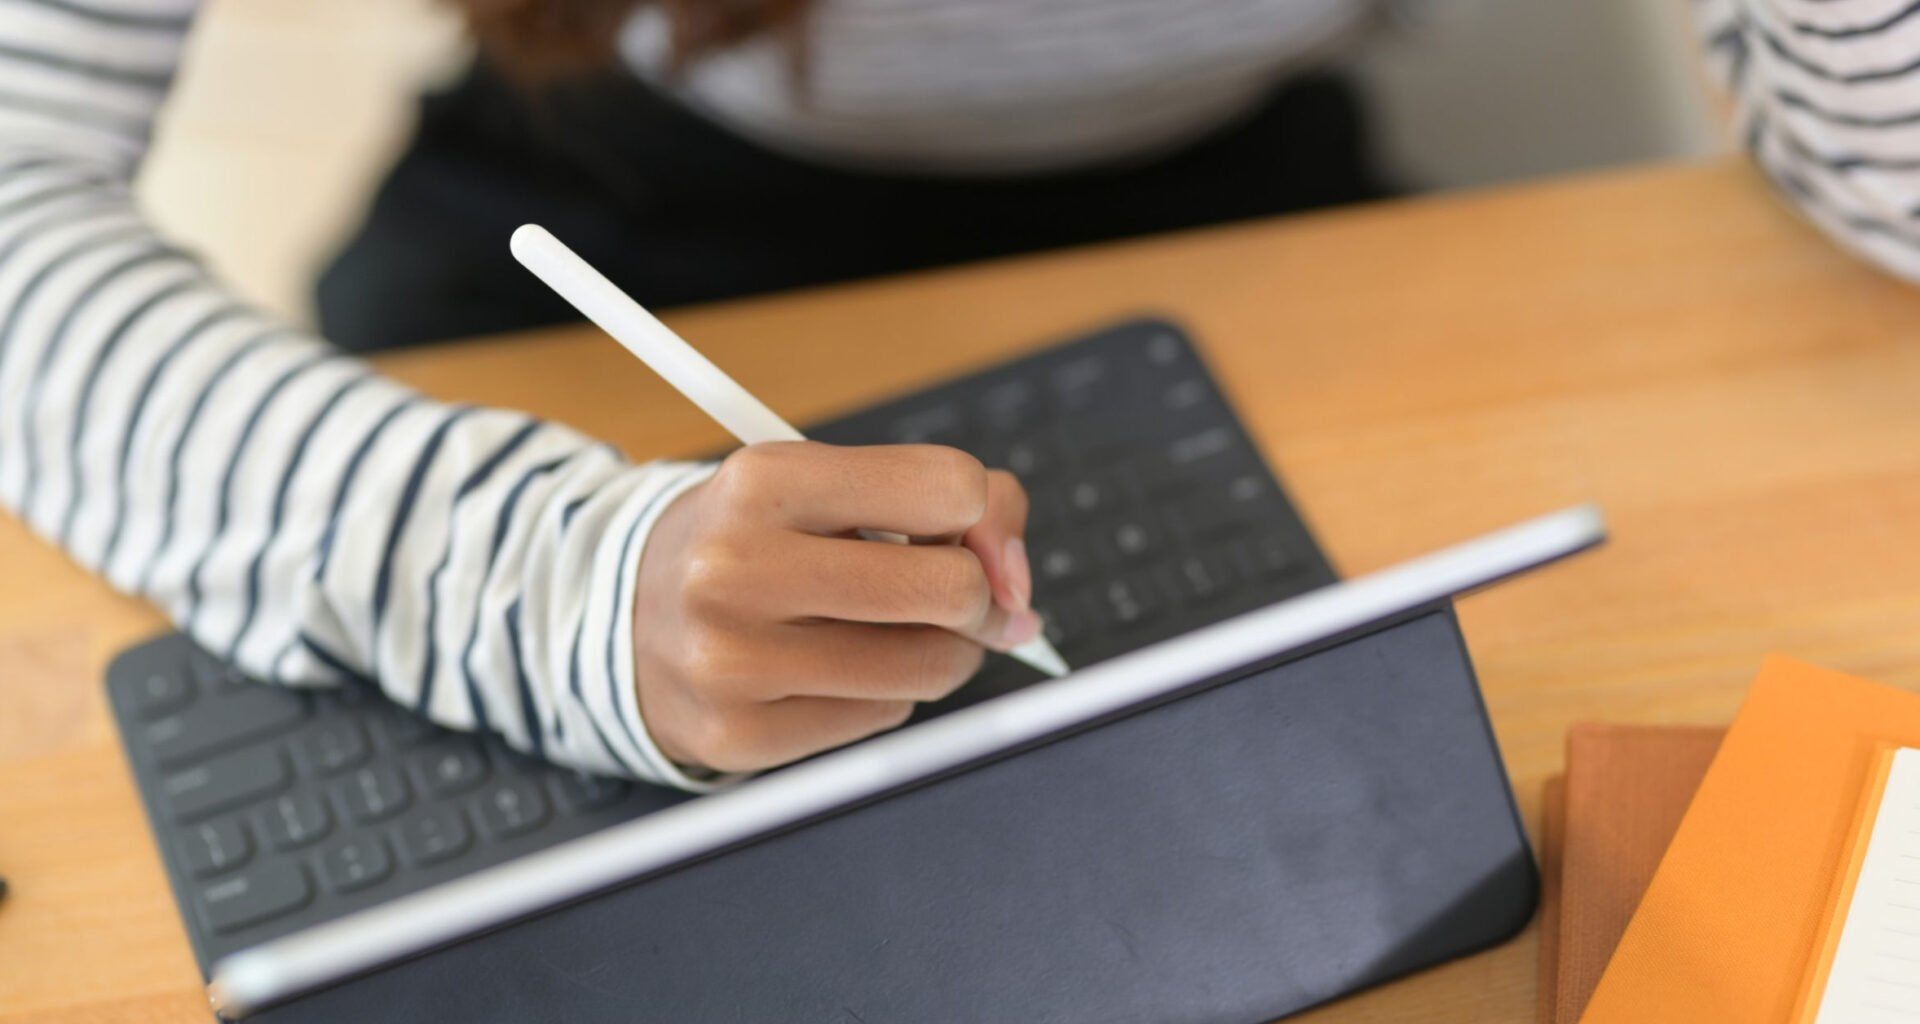 college student using stylus for note taking on tablet